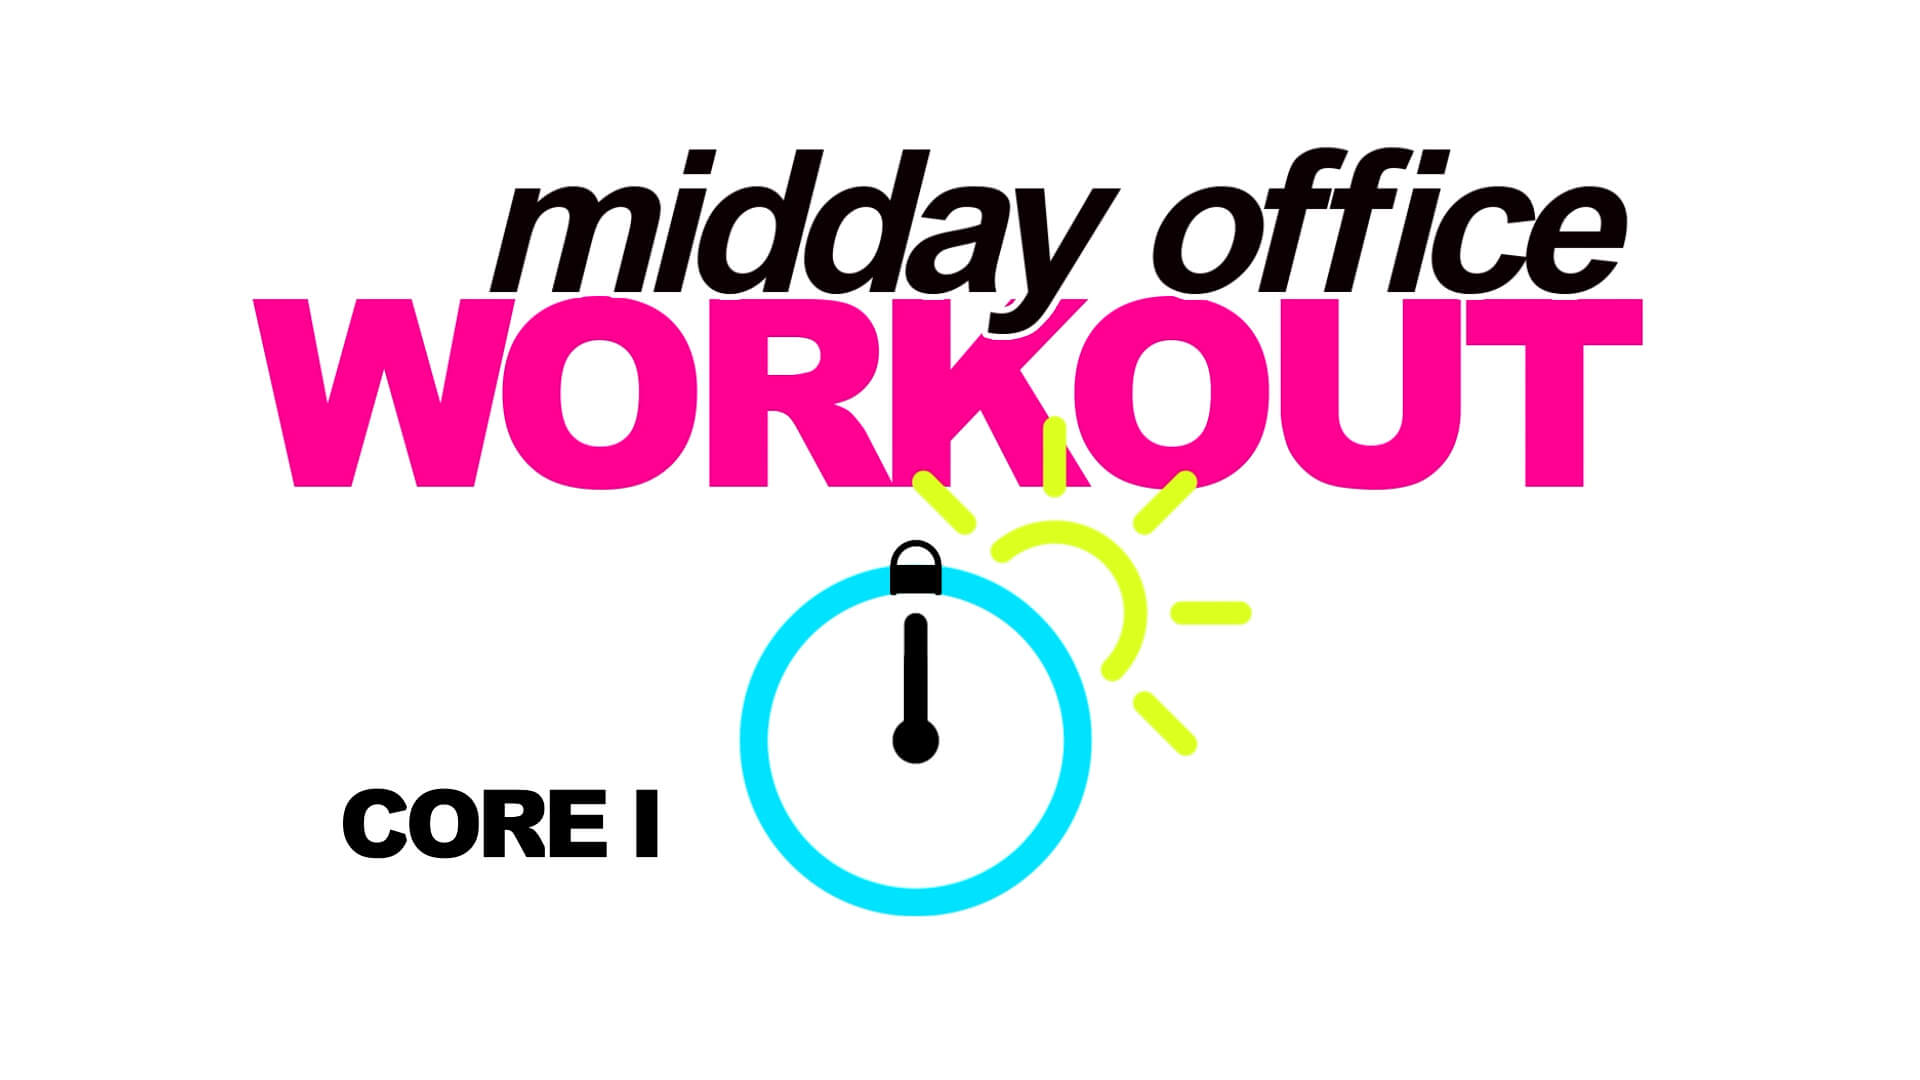 MIDDAY OFFICE WORKOUT CORE 1